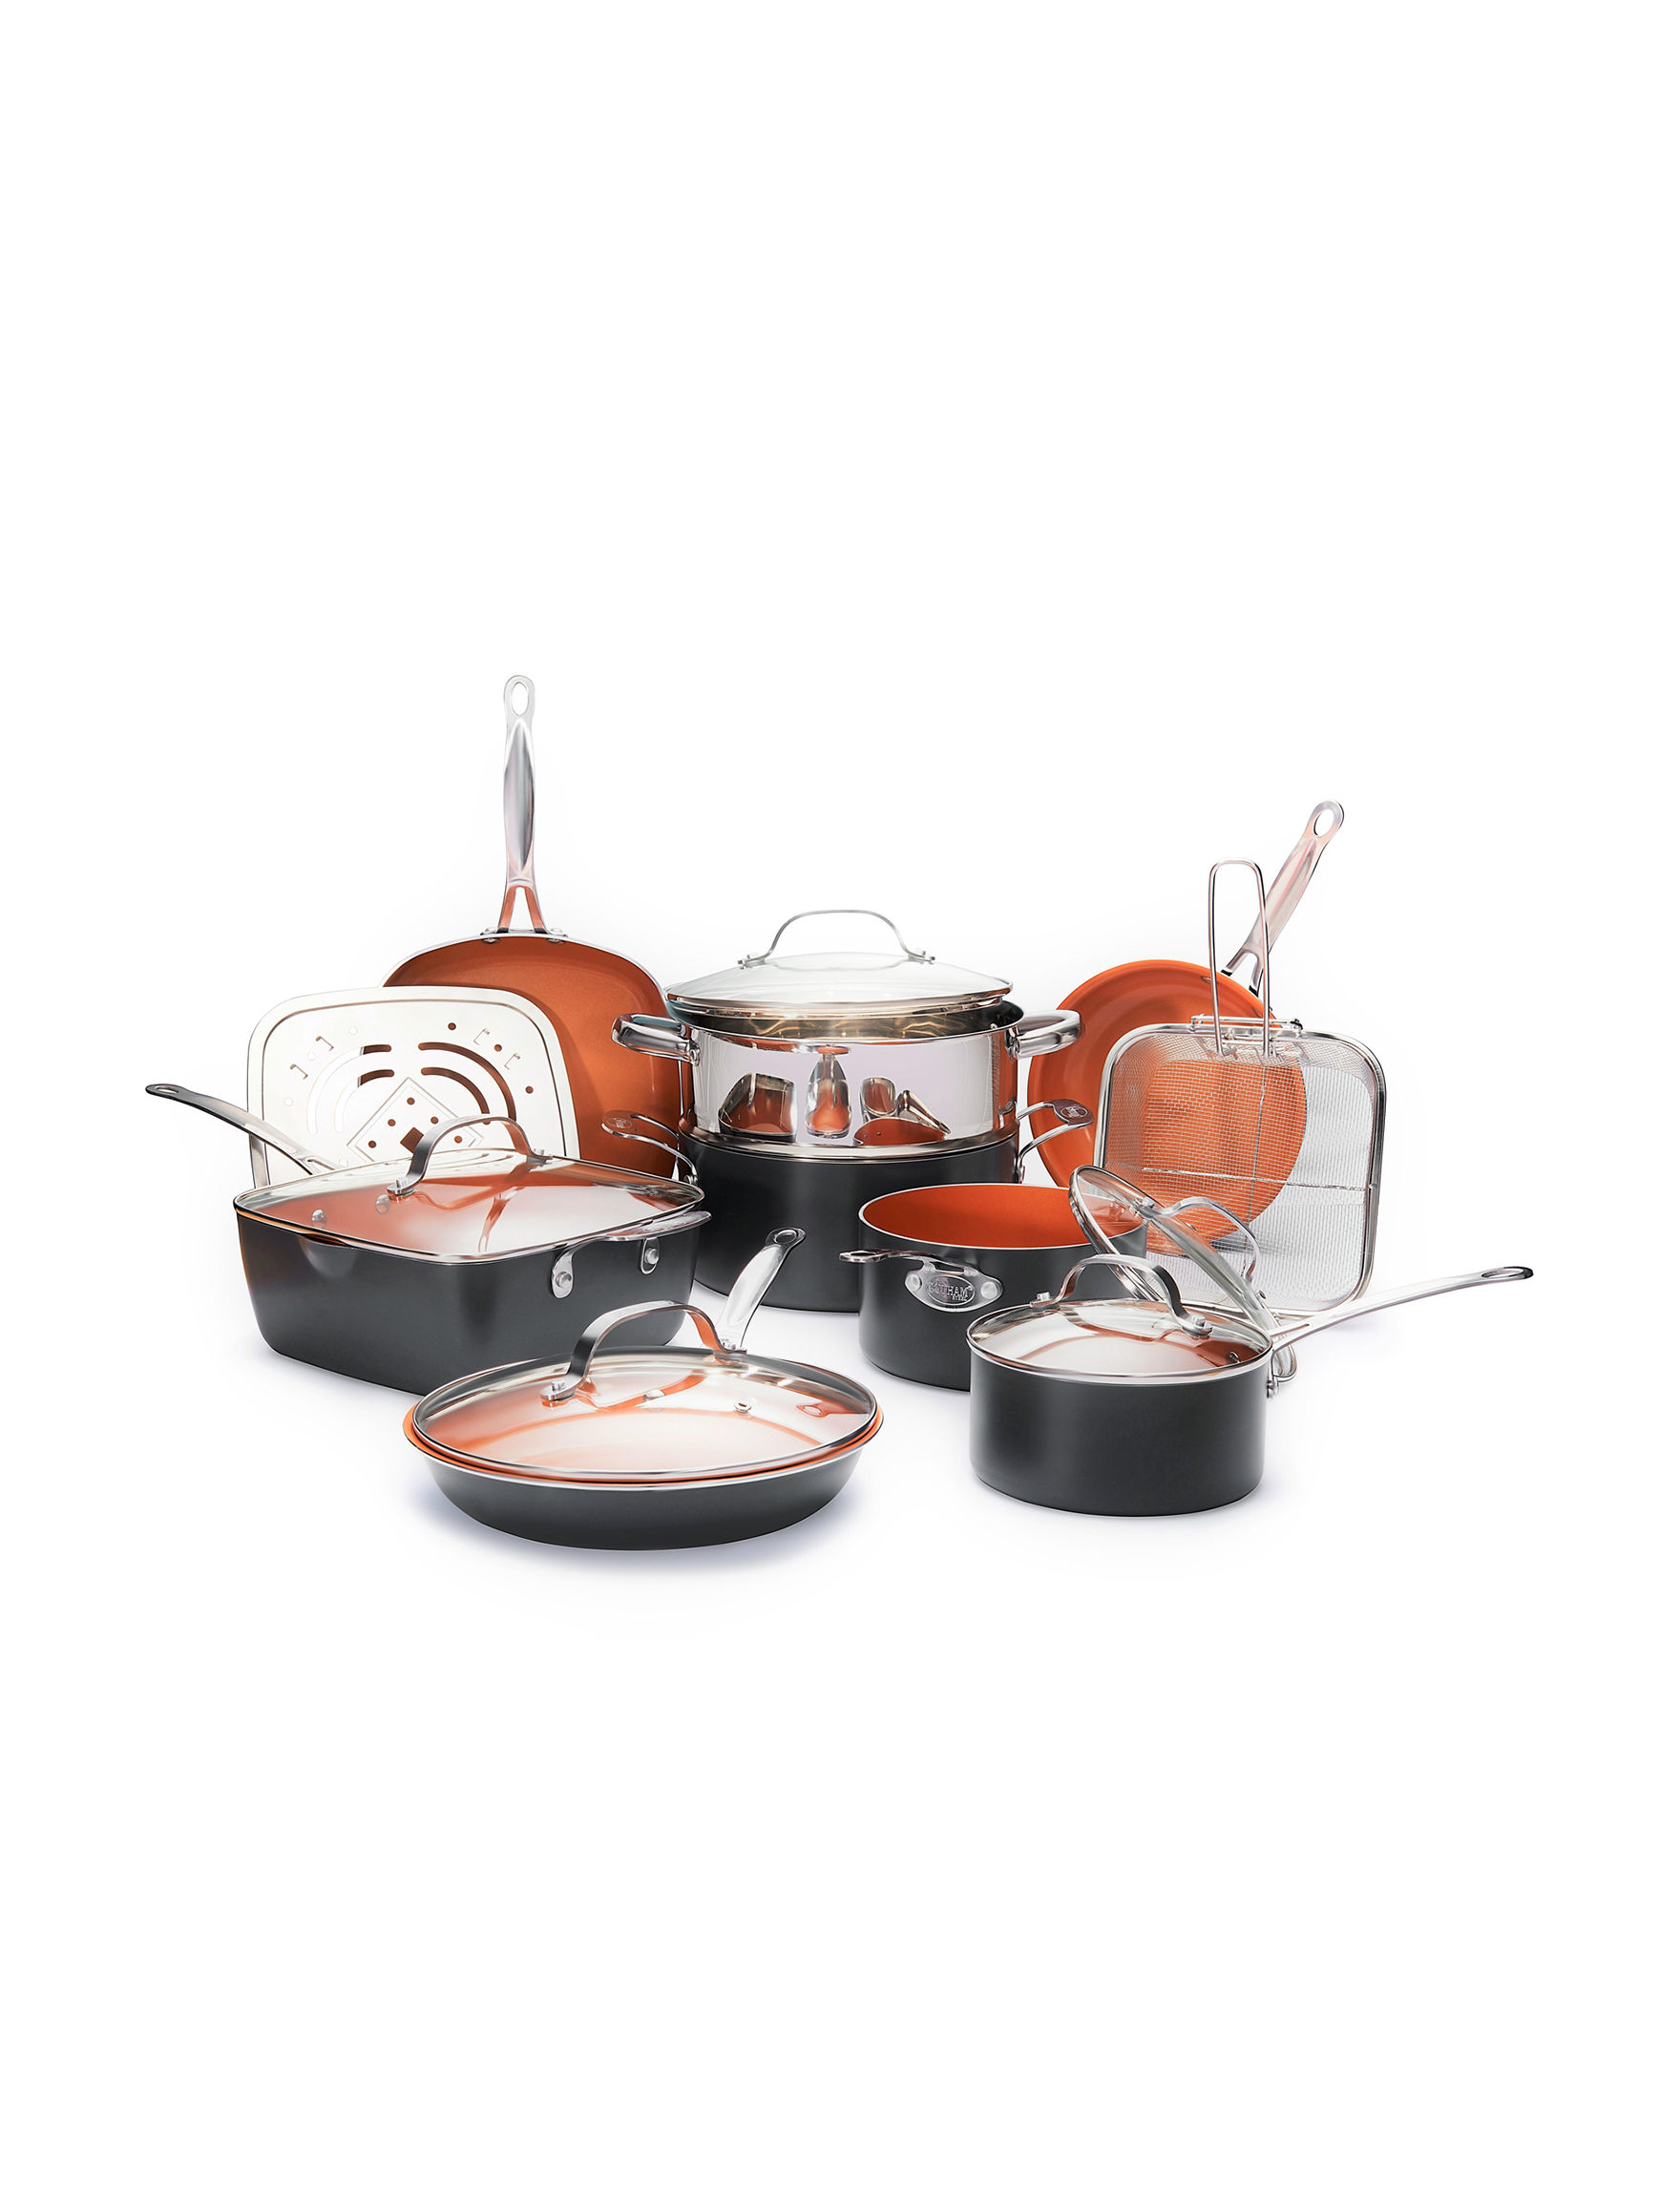 Gotham Steel Rust / Copper Cookware Sets Cookware